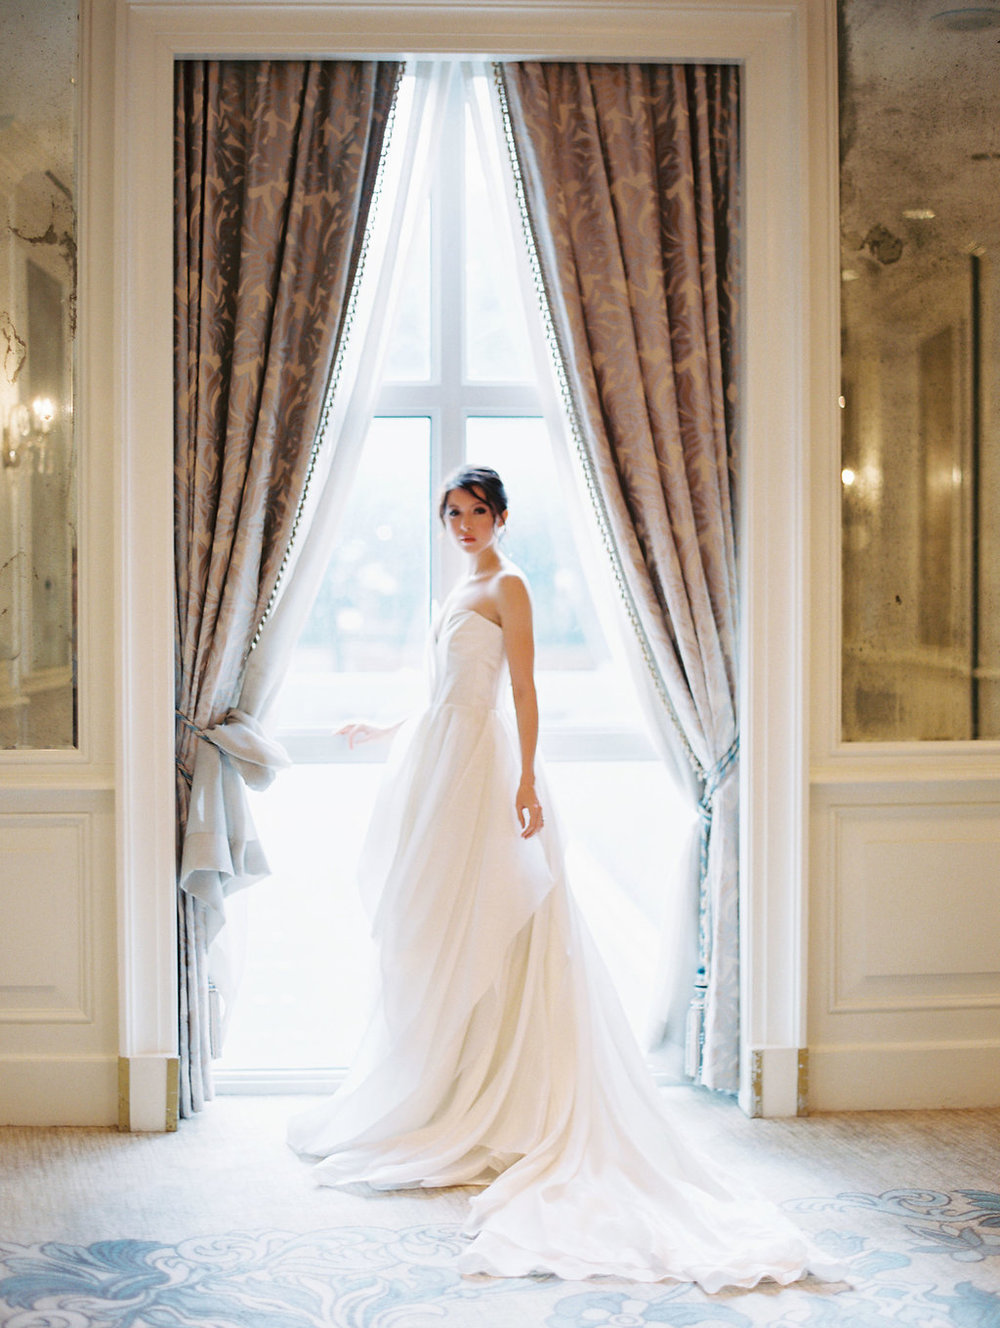 Carol Hannah Bridal Senara Gown Hotel-Crescent-Dallas-Wedding-Editorial-146.jpg